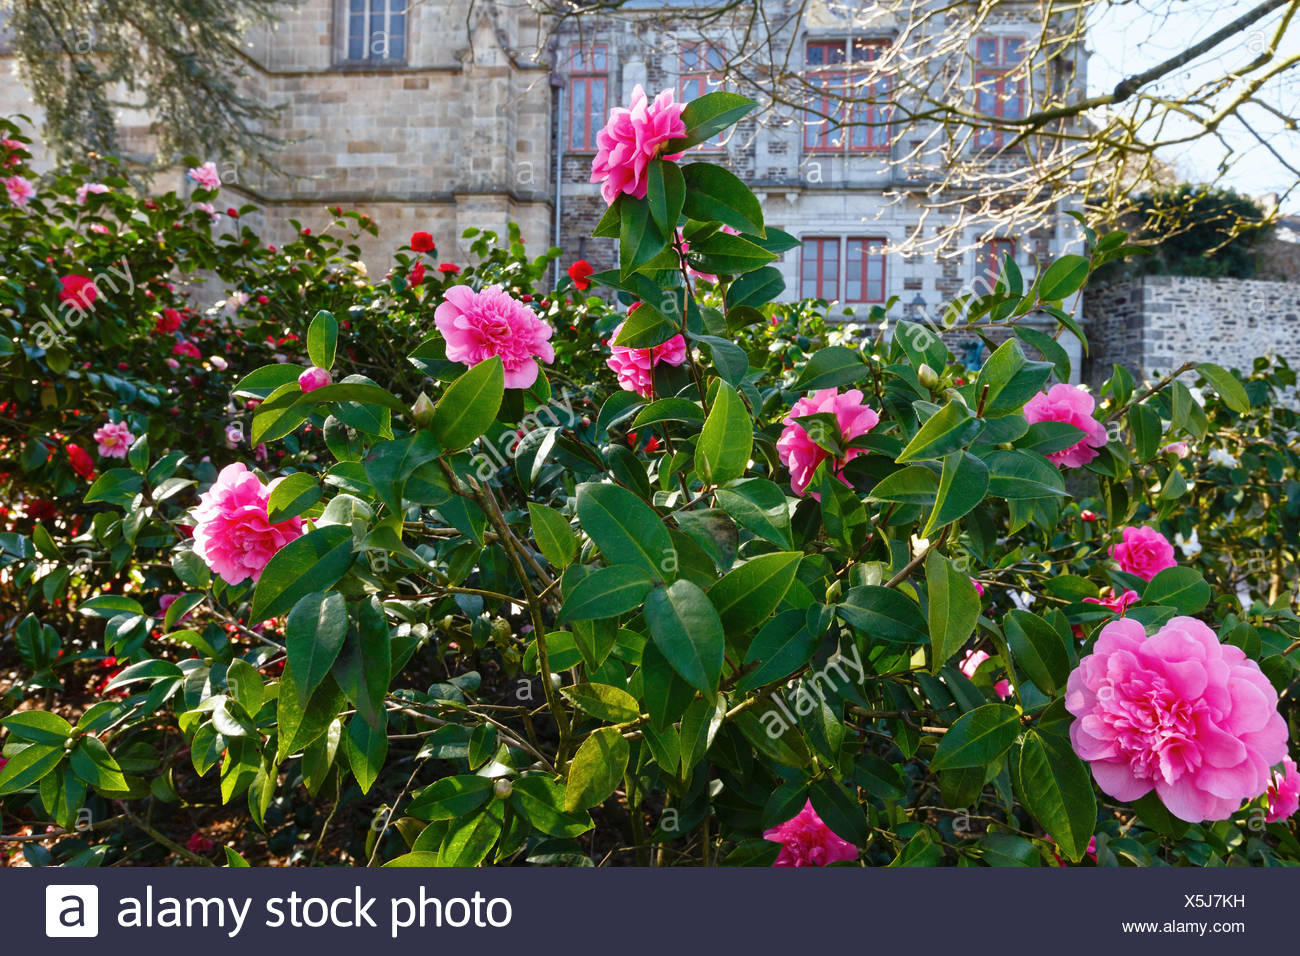 Blossoming Camellia Bush With Pink Flowers Stock Photo 278840341